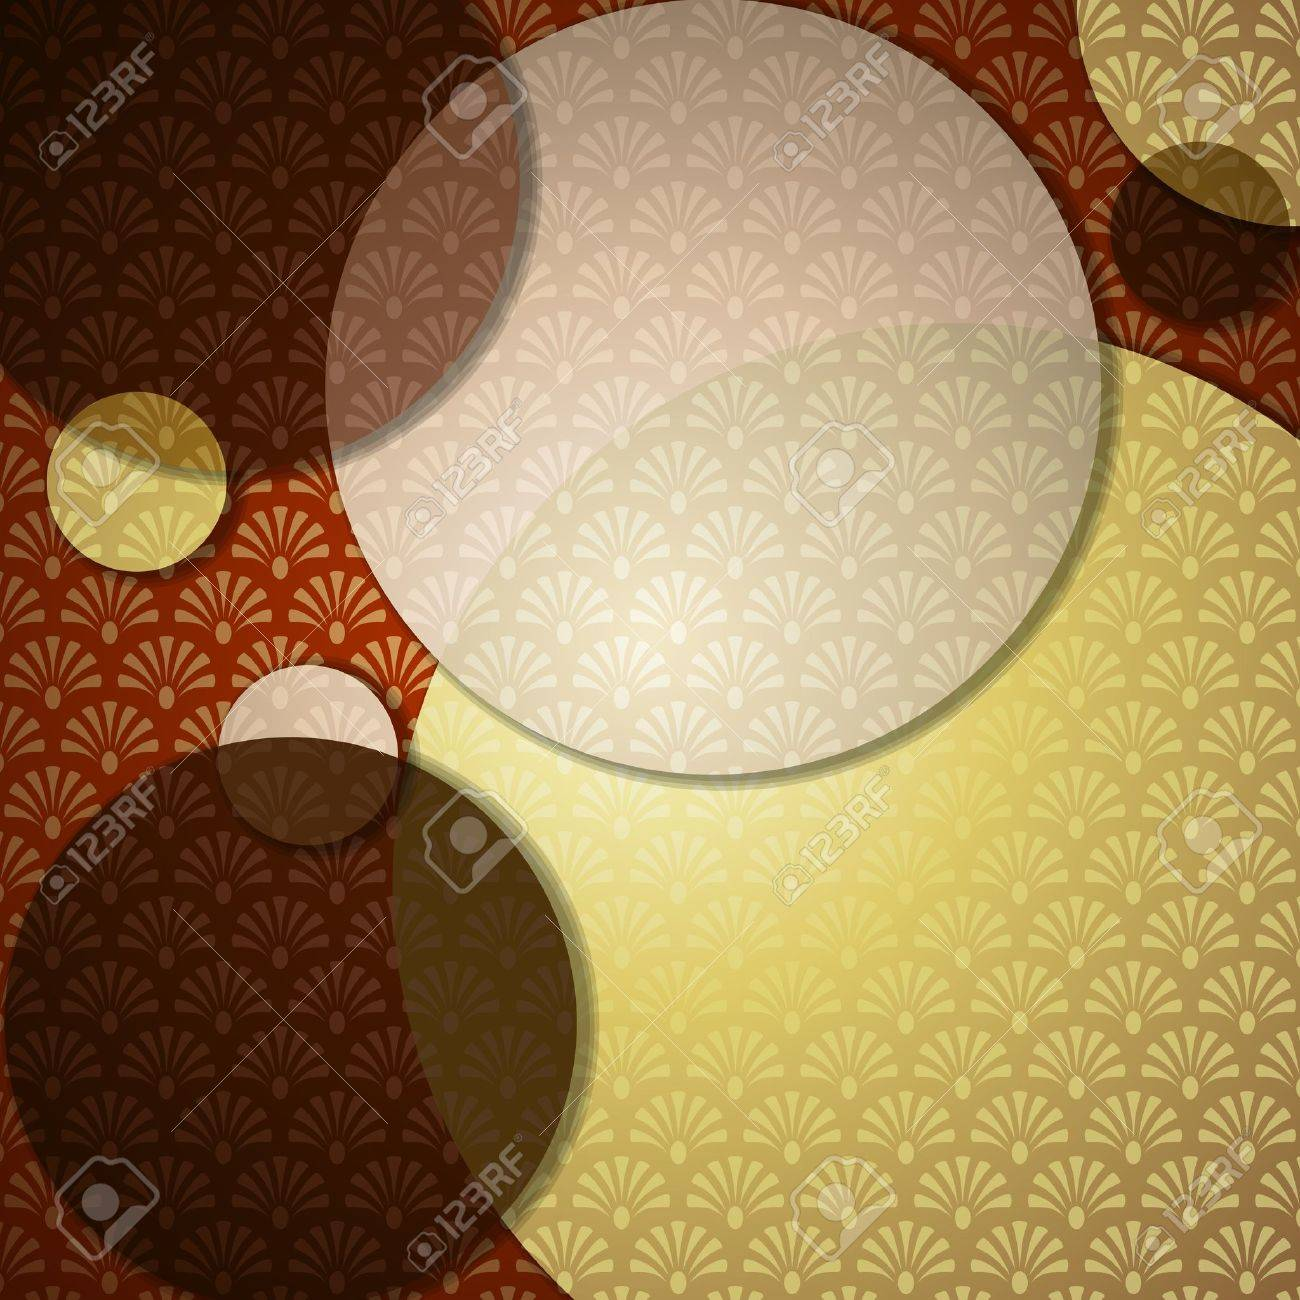 Elegant patterned background in warm brown tones. Graphics are grouped and in several layers for easy editing. The file can be scaled to any size. Stock Vector - 9715882